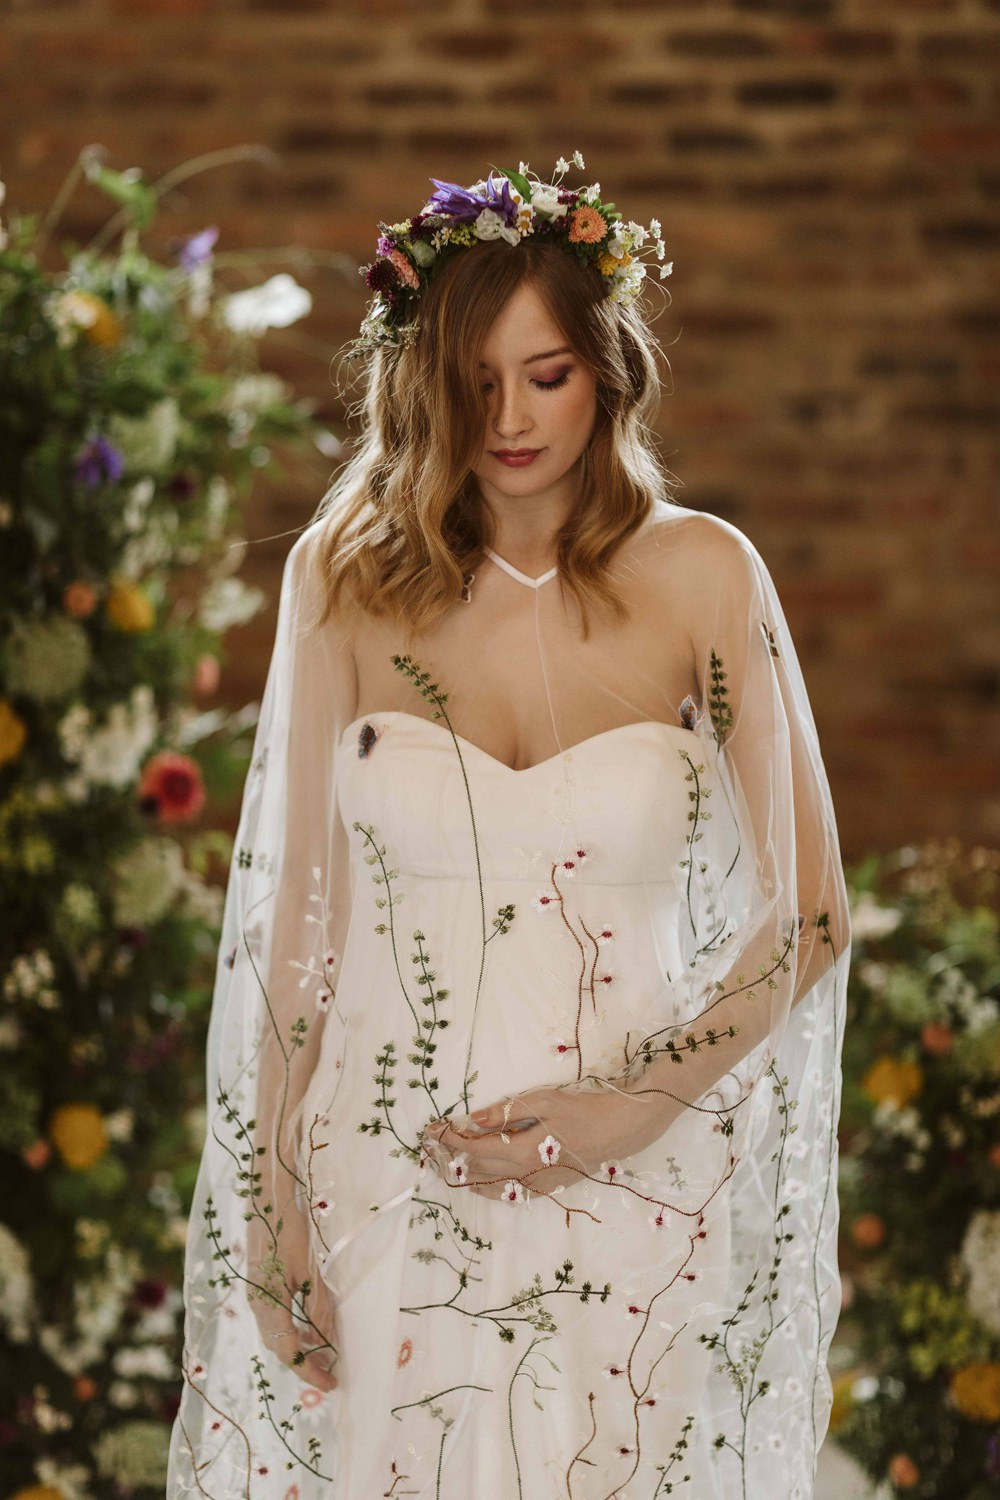 Floral Embroidered Veil Oakwood at Ryther Wedding Freya Raby